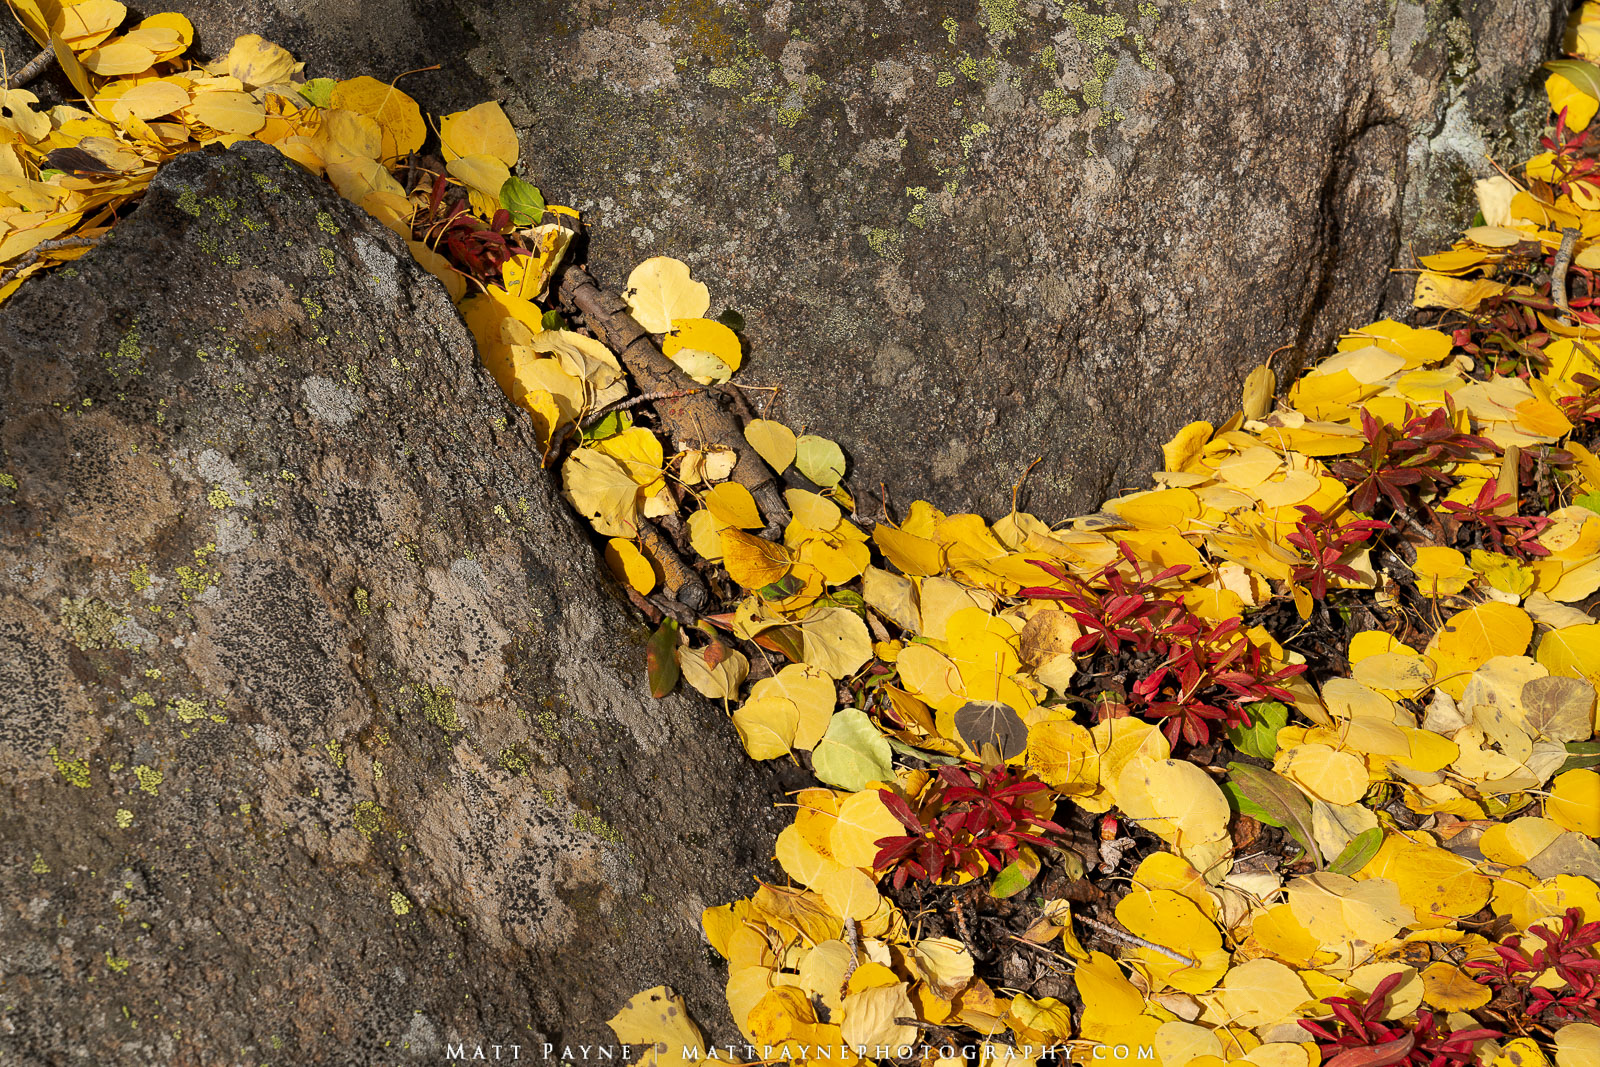 Boulders, Fall, Fall Colors, Foliage, Landscape, aspen leaves, Landscape Photography, photo